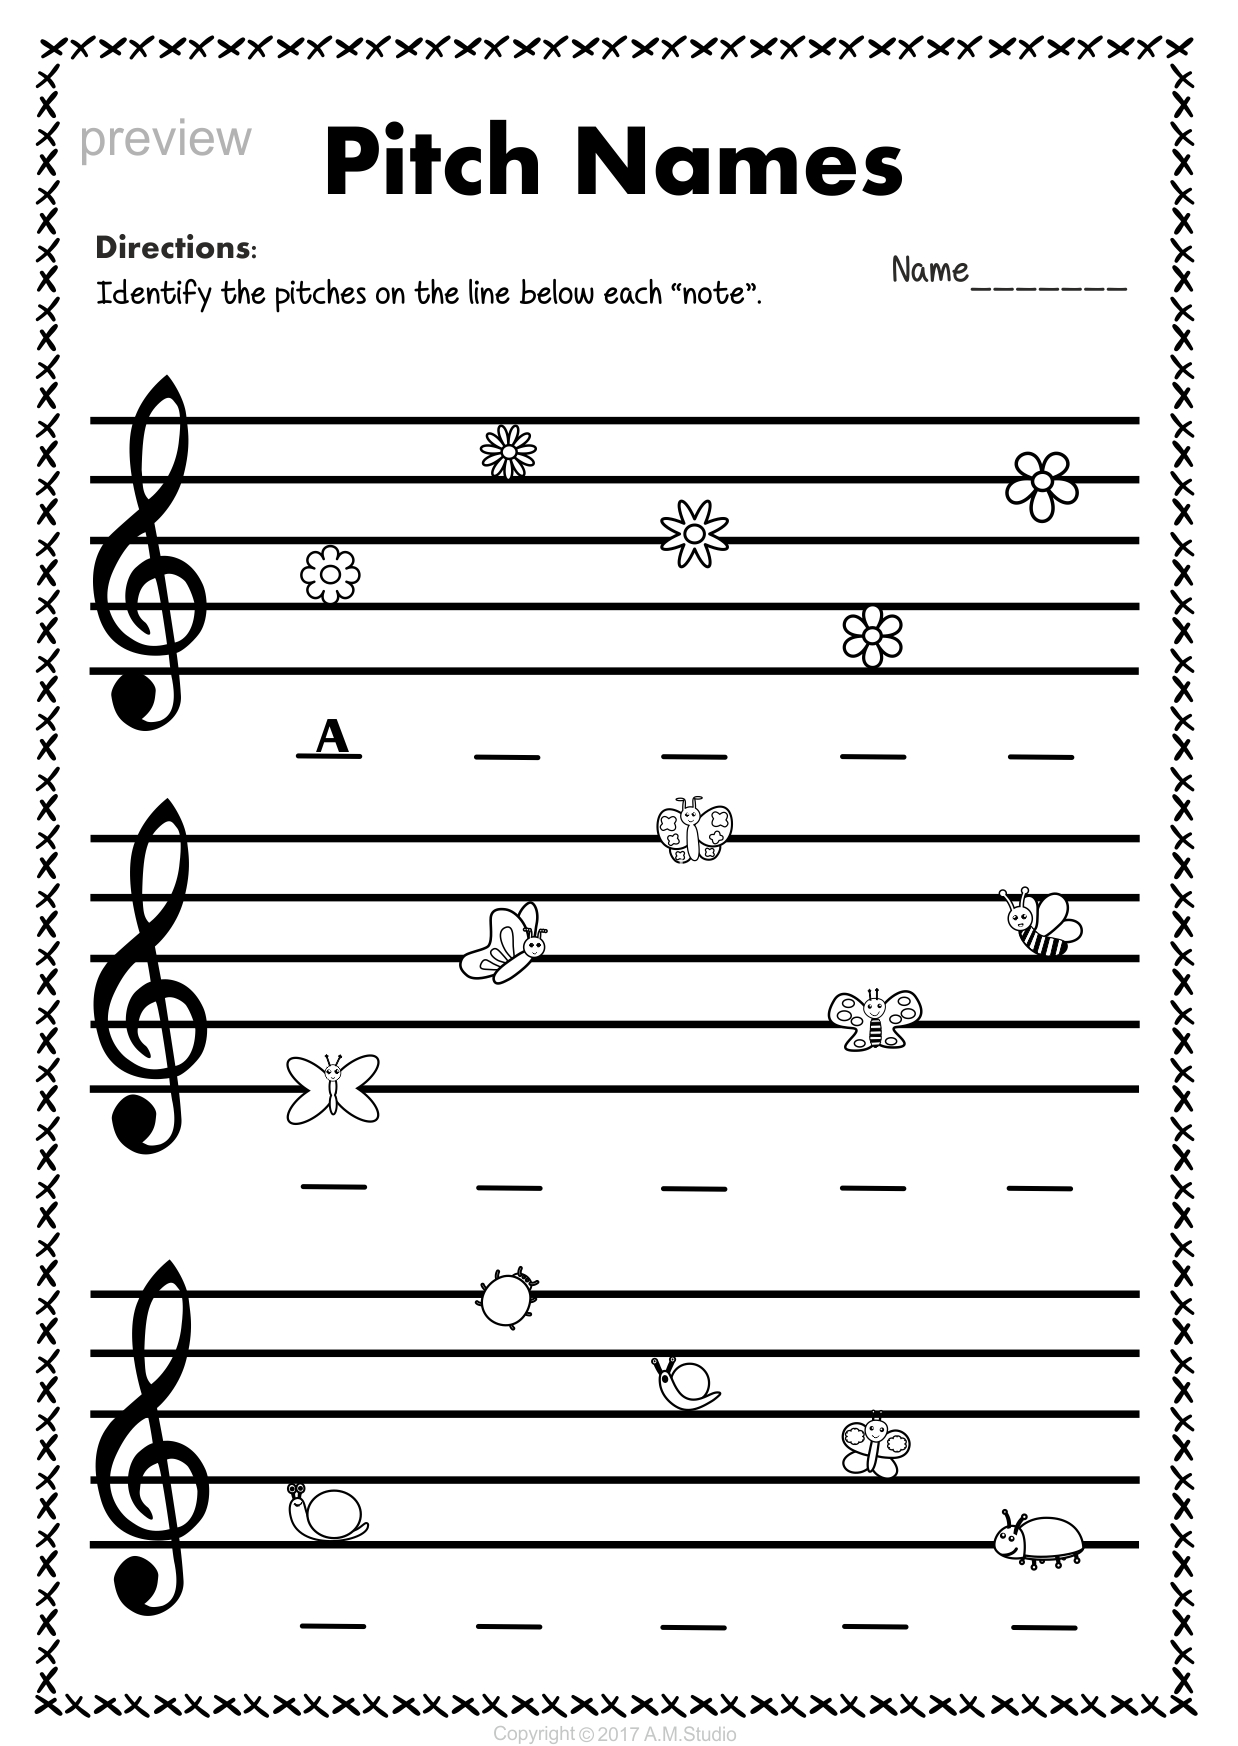 Worksheets Treble Clef Worksheets treble clef note naming worksheets for spring5 anastasiya spring